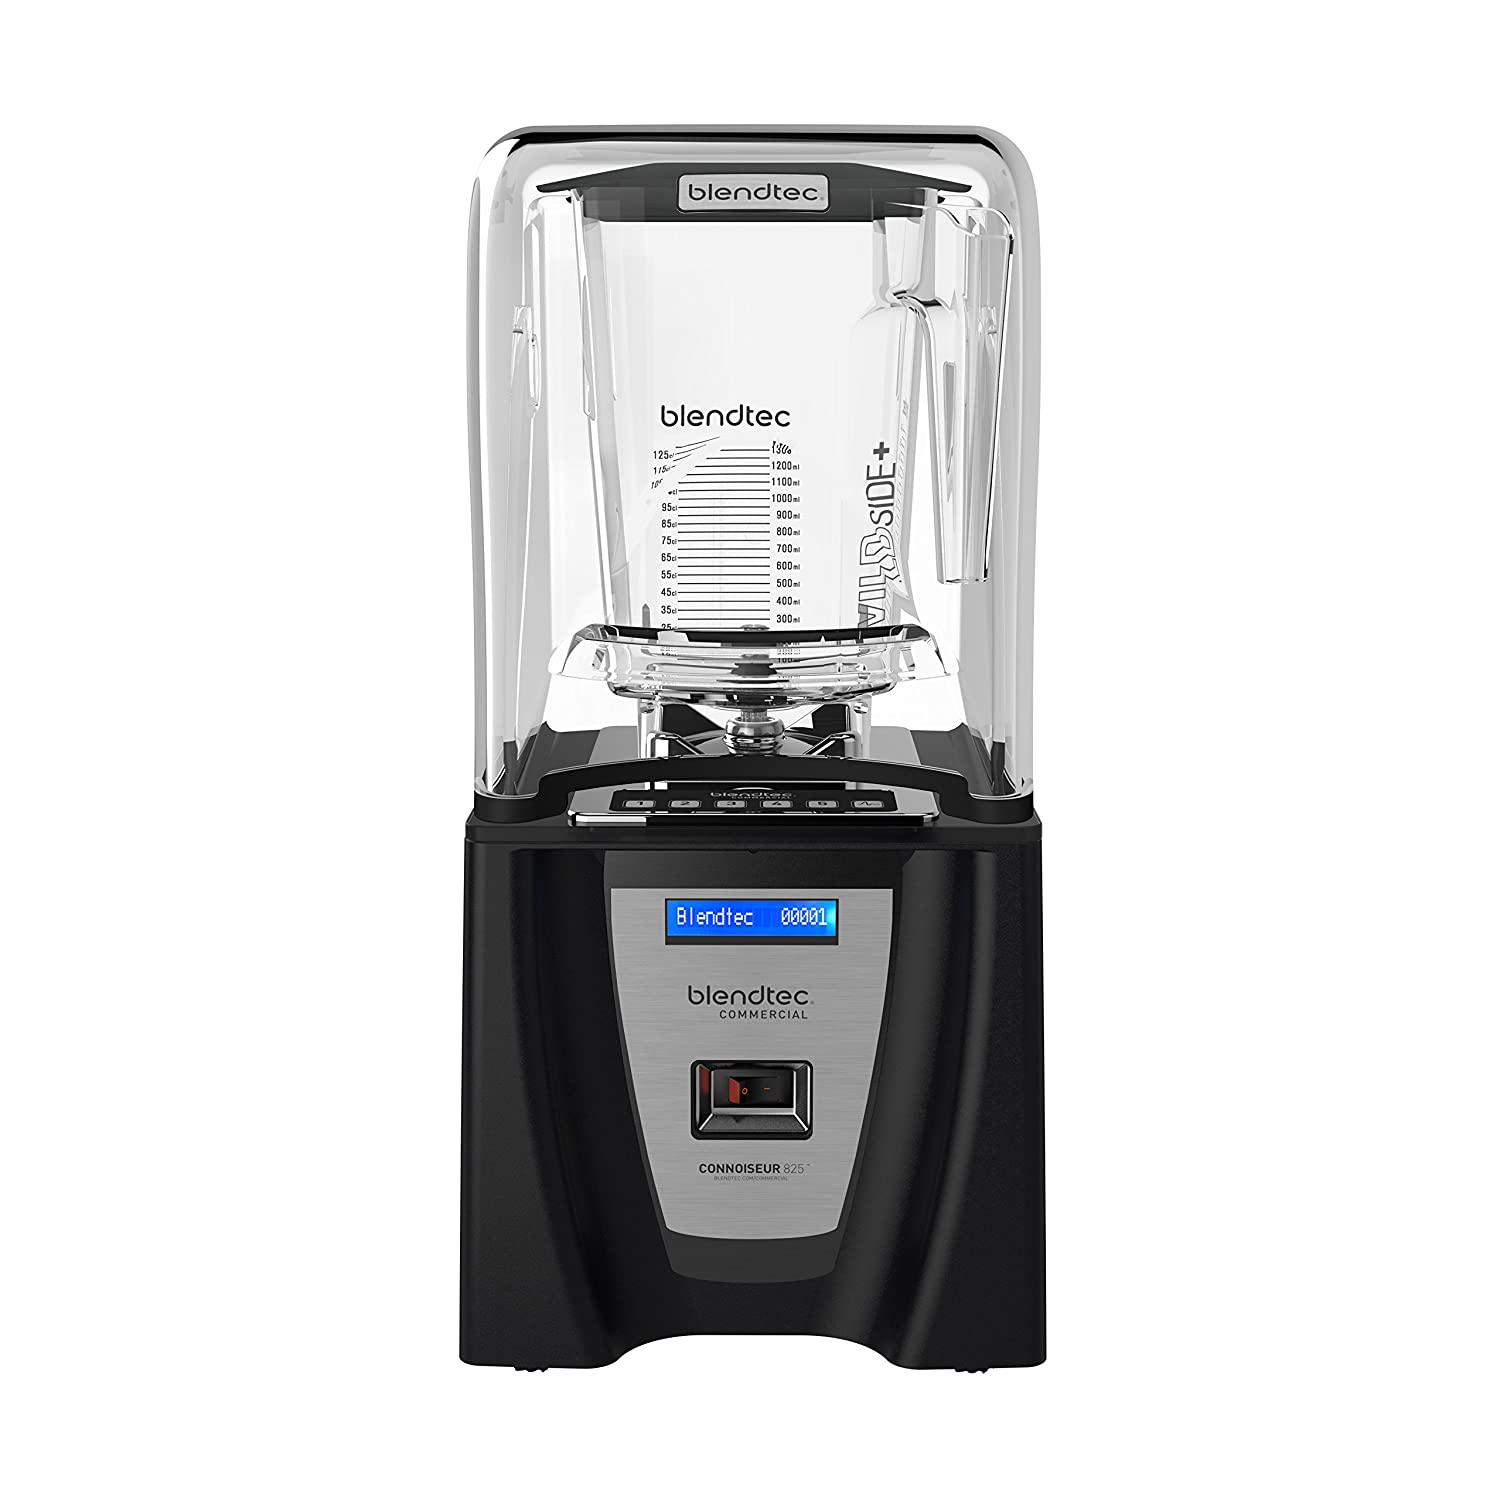 Blendtec Connoisseur 825 Professional Blender with WildSide+ Jar (90 oz), Includes Blendtec Q Series Sound Enclosure, Industries Strongest and Quietest Professional-Grade Power, 30 Pre-programmed Cycles, Black